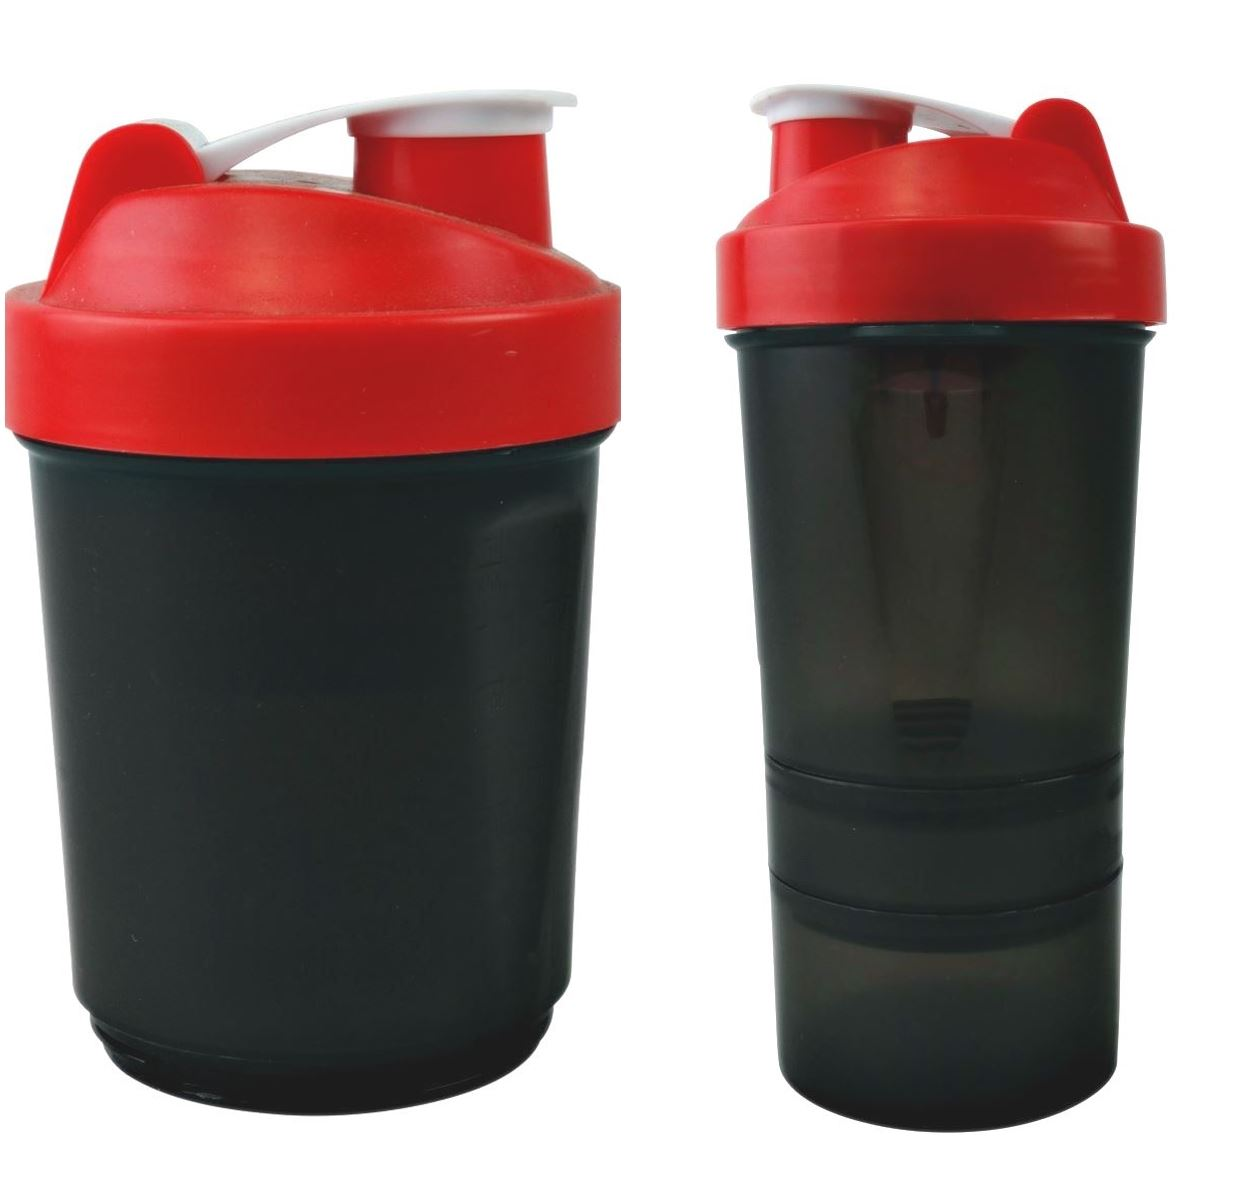 Protein Shaker Lot: Red Protein Shaker 400-500ml Water Nutrition Mixer Bottle